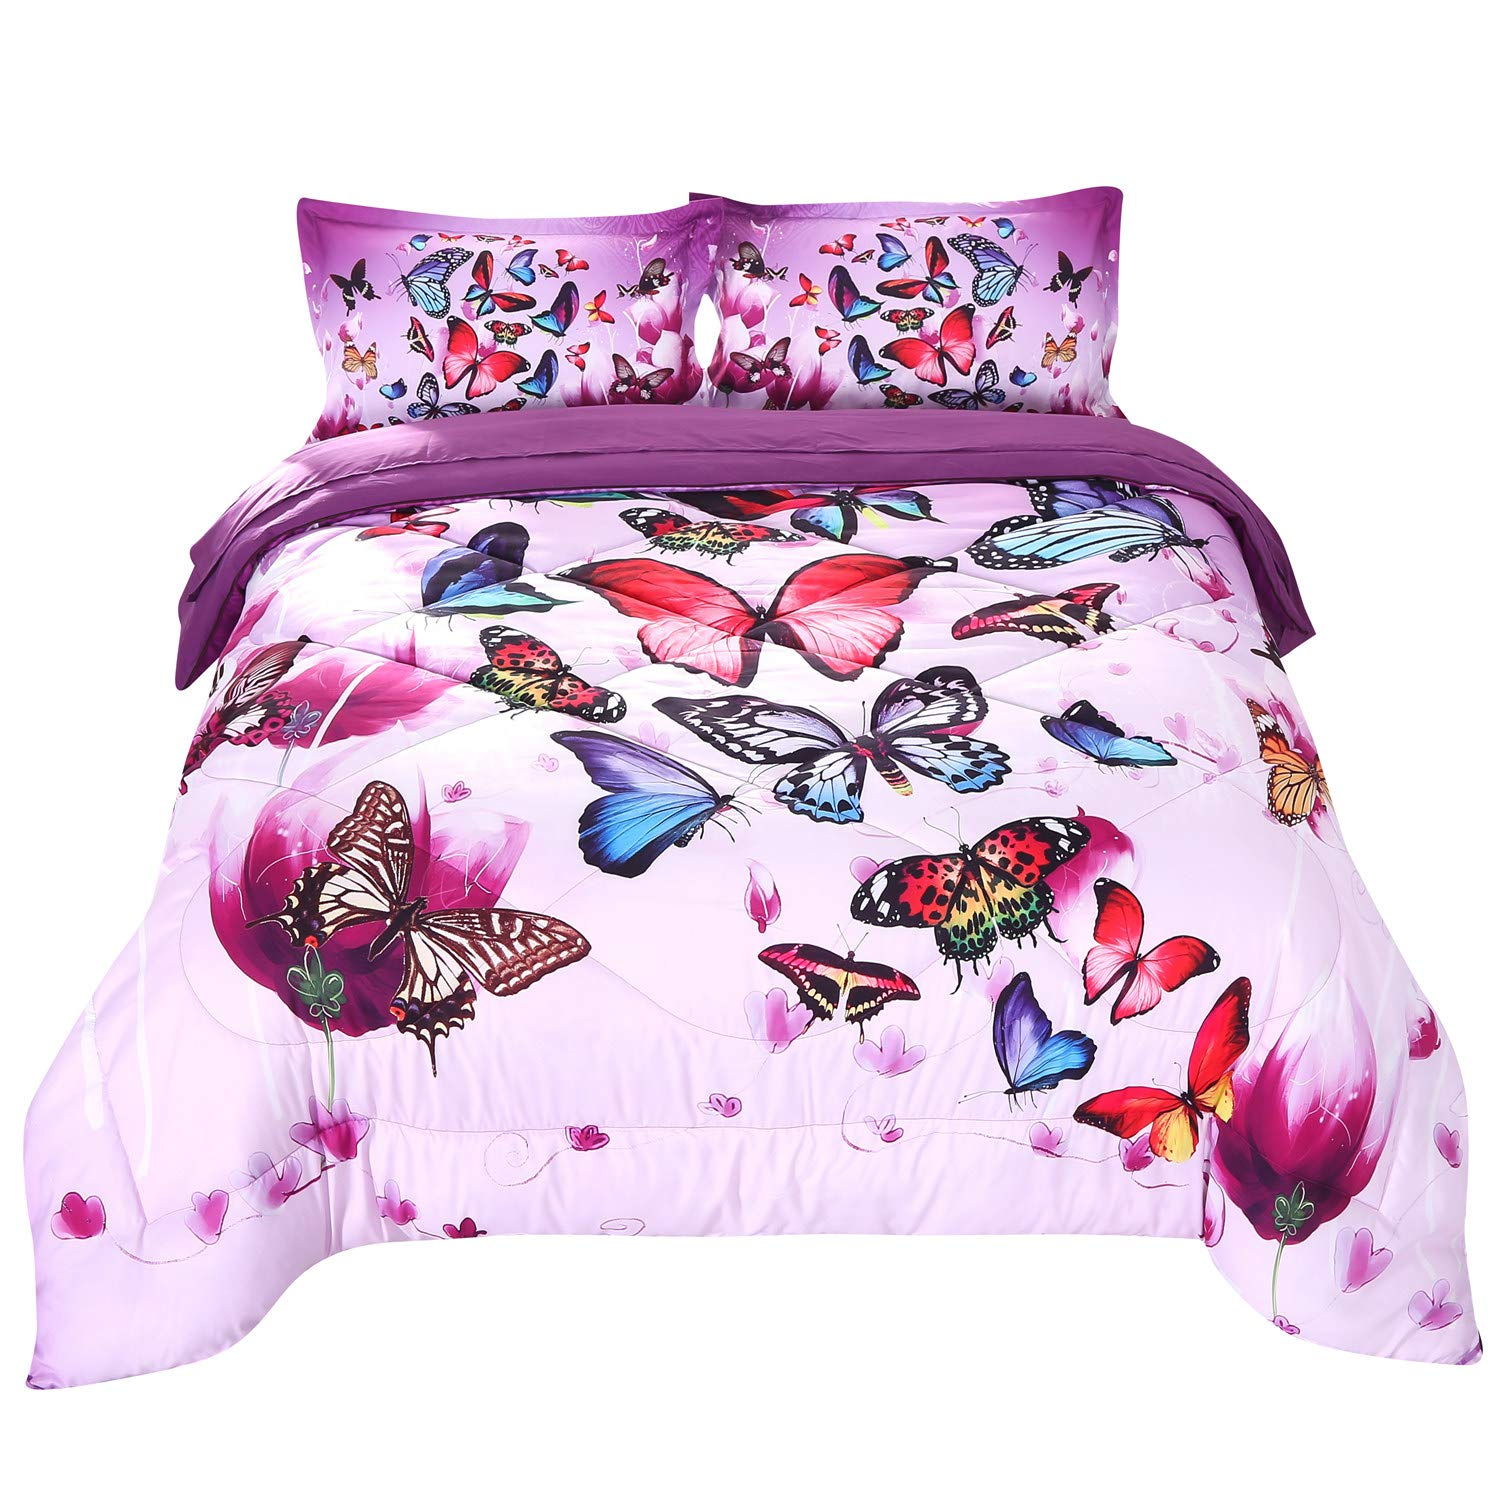 Wowelife 3D Purple Butterfly Comforter Queen Upgraded Print Beautiful Butterfly Groups in 5 Piece with Comforter, Flat Sheet, Fitted Sheet and 2 Pillow Cases (Playing Butterfly, Queen)